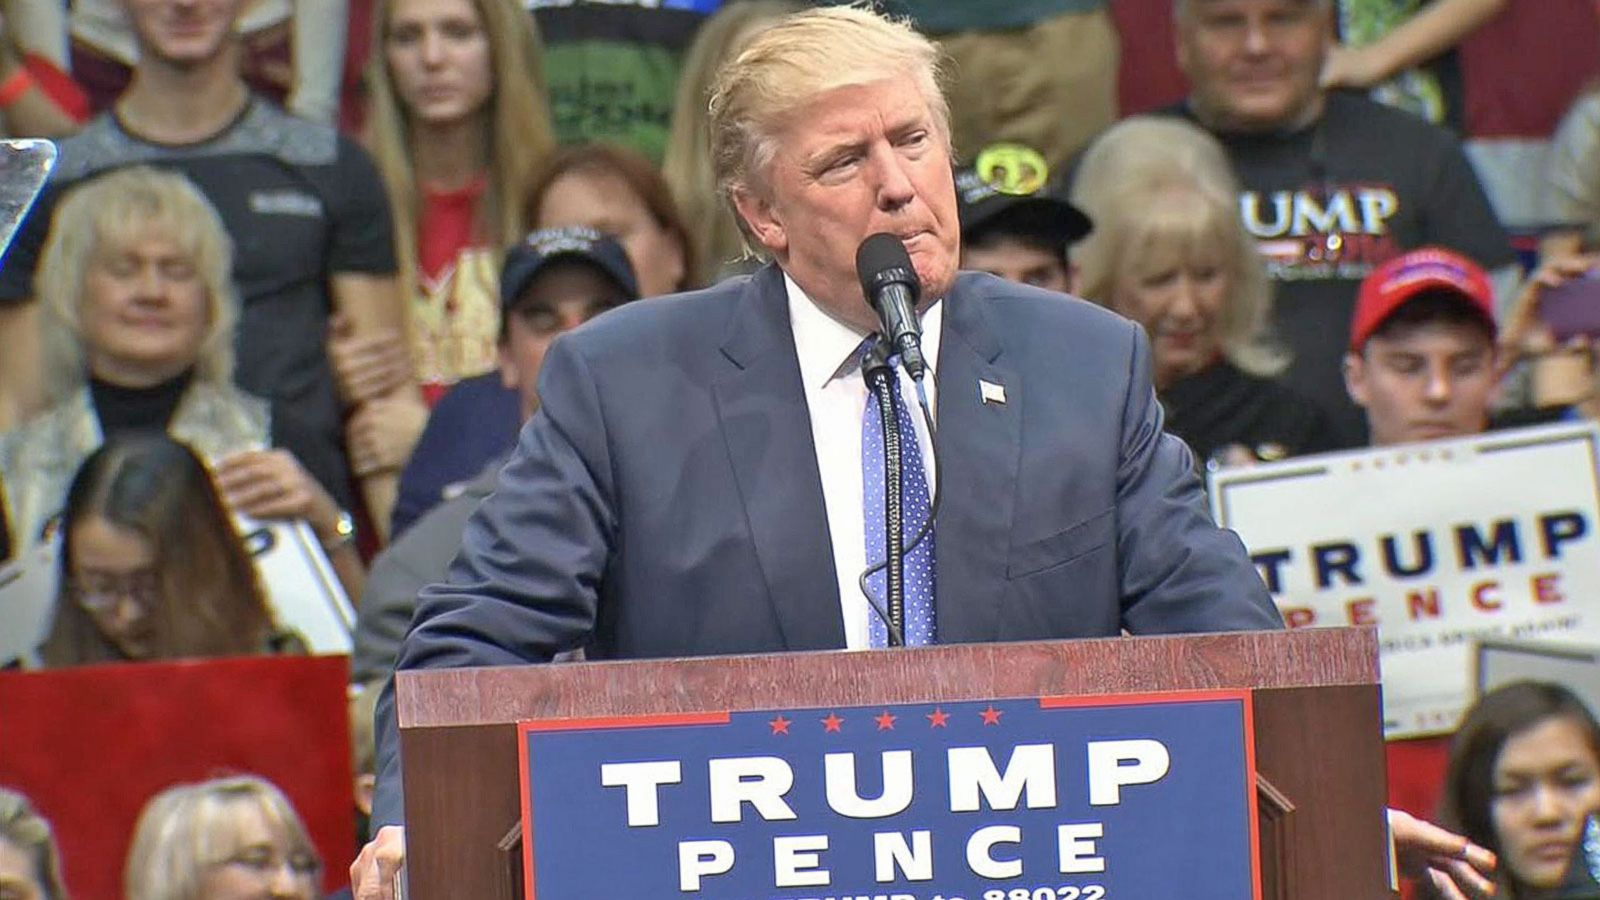 VIDEO: Donald Trump Works to Turn Campaign Around Post-Debates